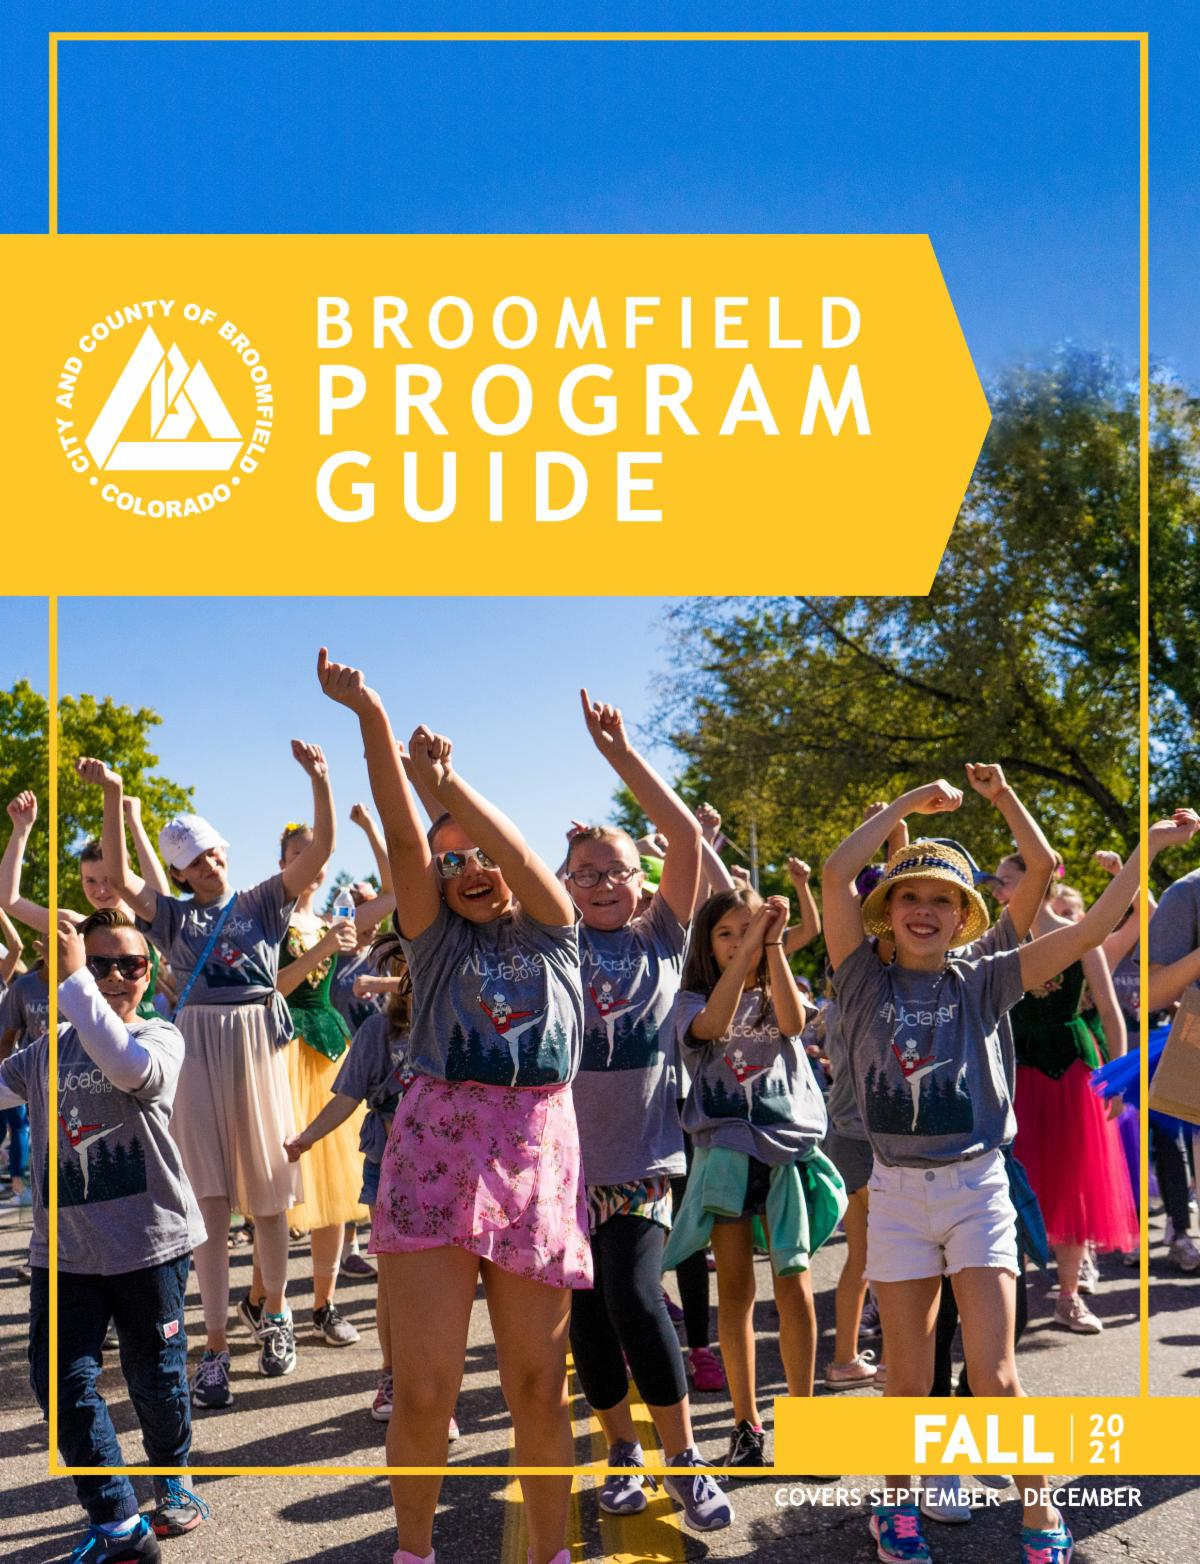 2021 Fall program Guide cover featureing dancing  youth in the Broomfield Days Parade